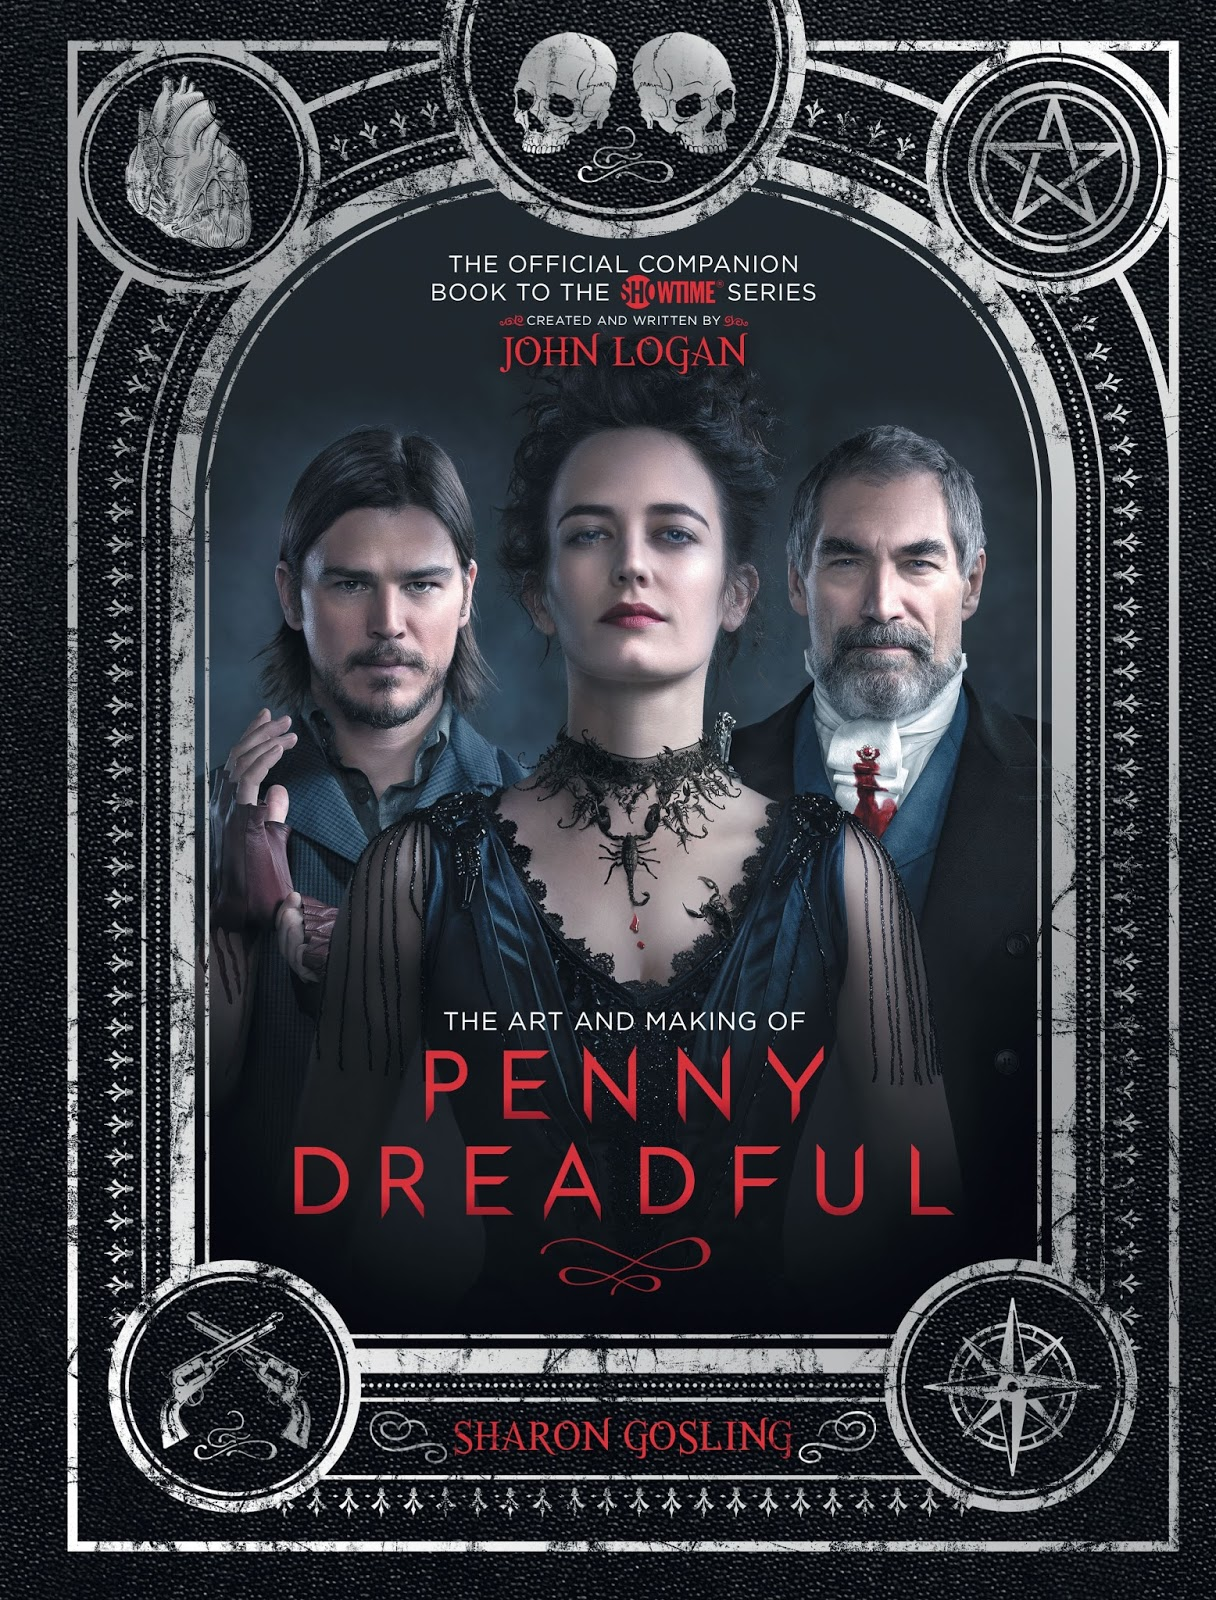 Penny Dreadful cover art